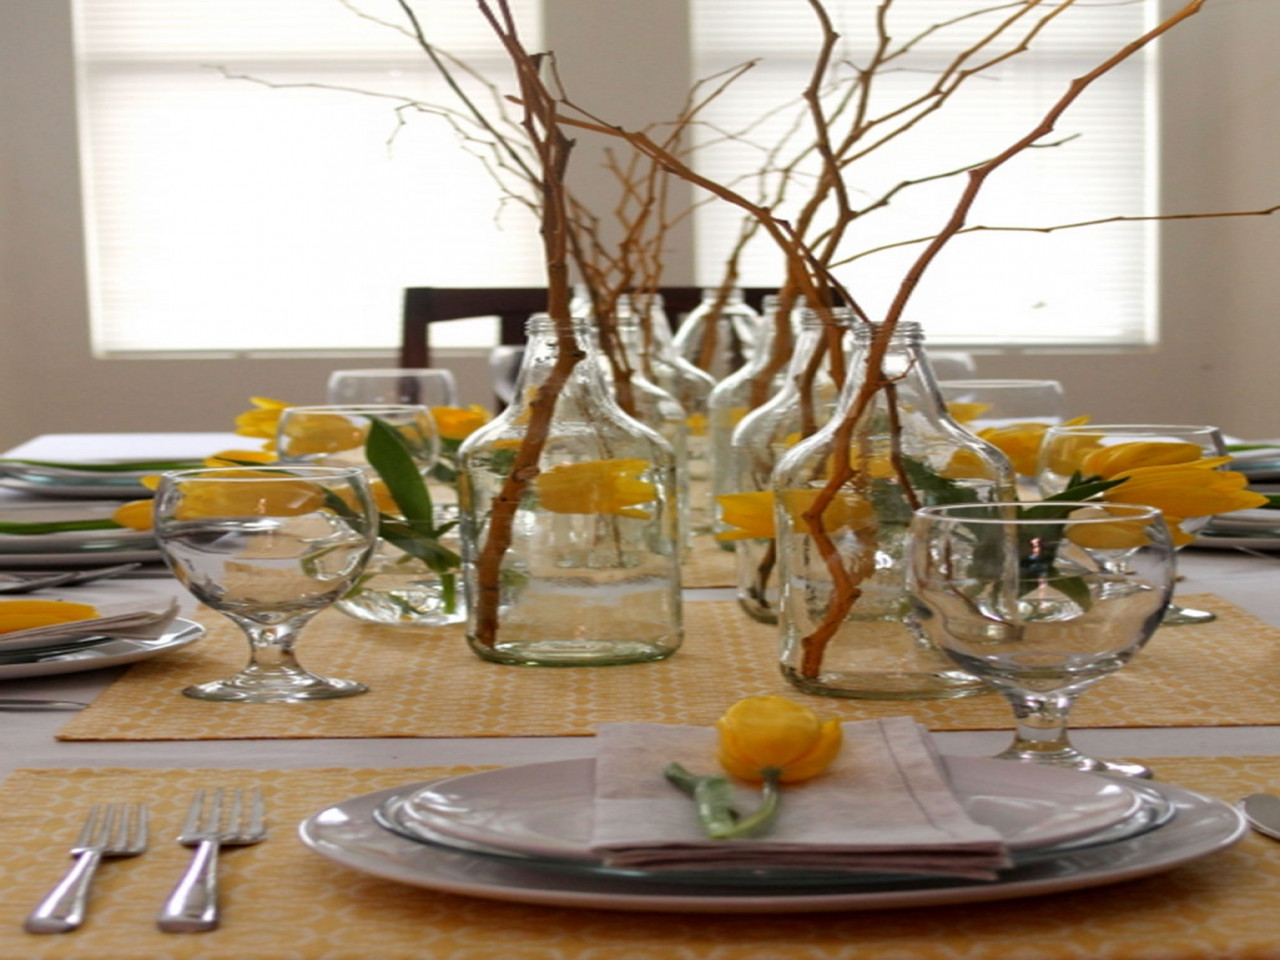 Dinner Table Centerpiece  Dinner table centerpiece ideas elegant dining table